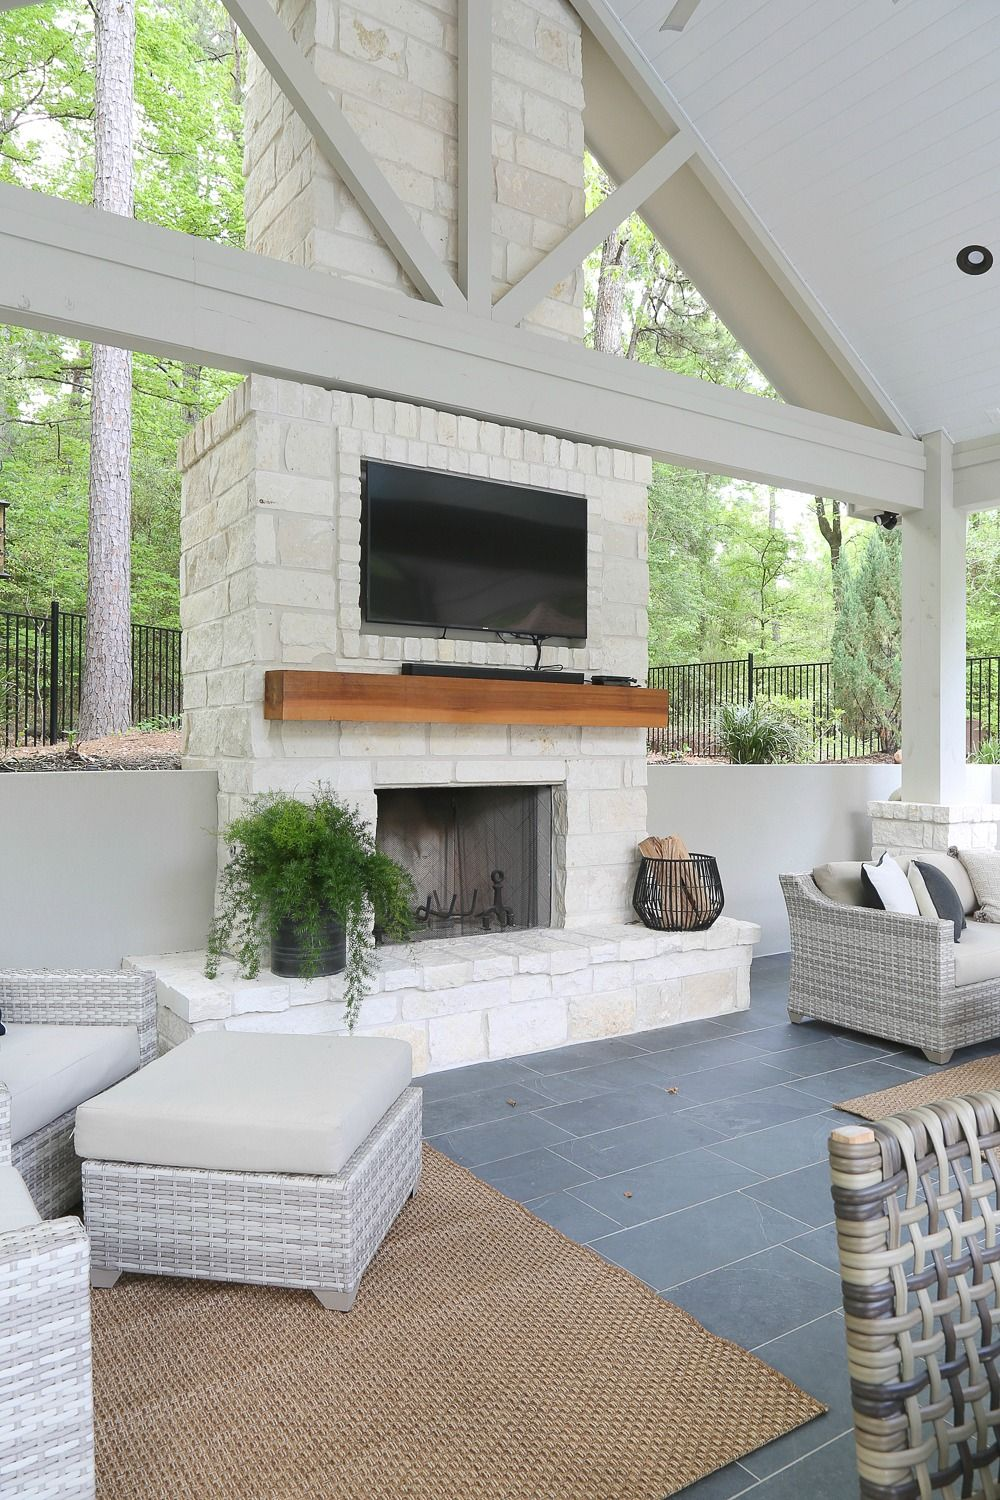 Creative Outdoor Fireplace Designs And Ideas Outdoor Remodel Outdoor Fireplace Designs Outdoor Fireplace